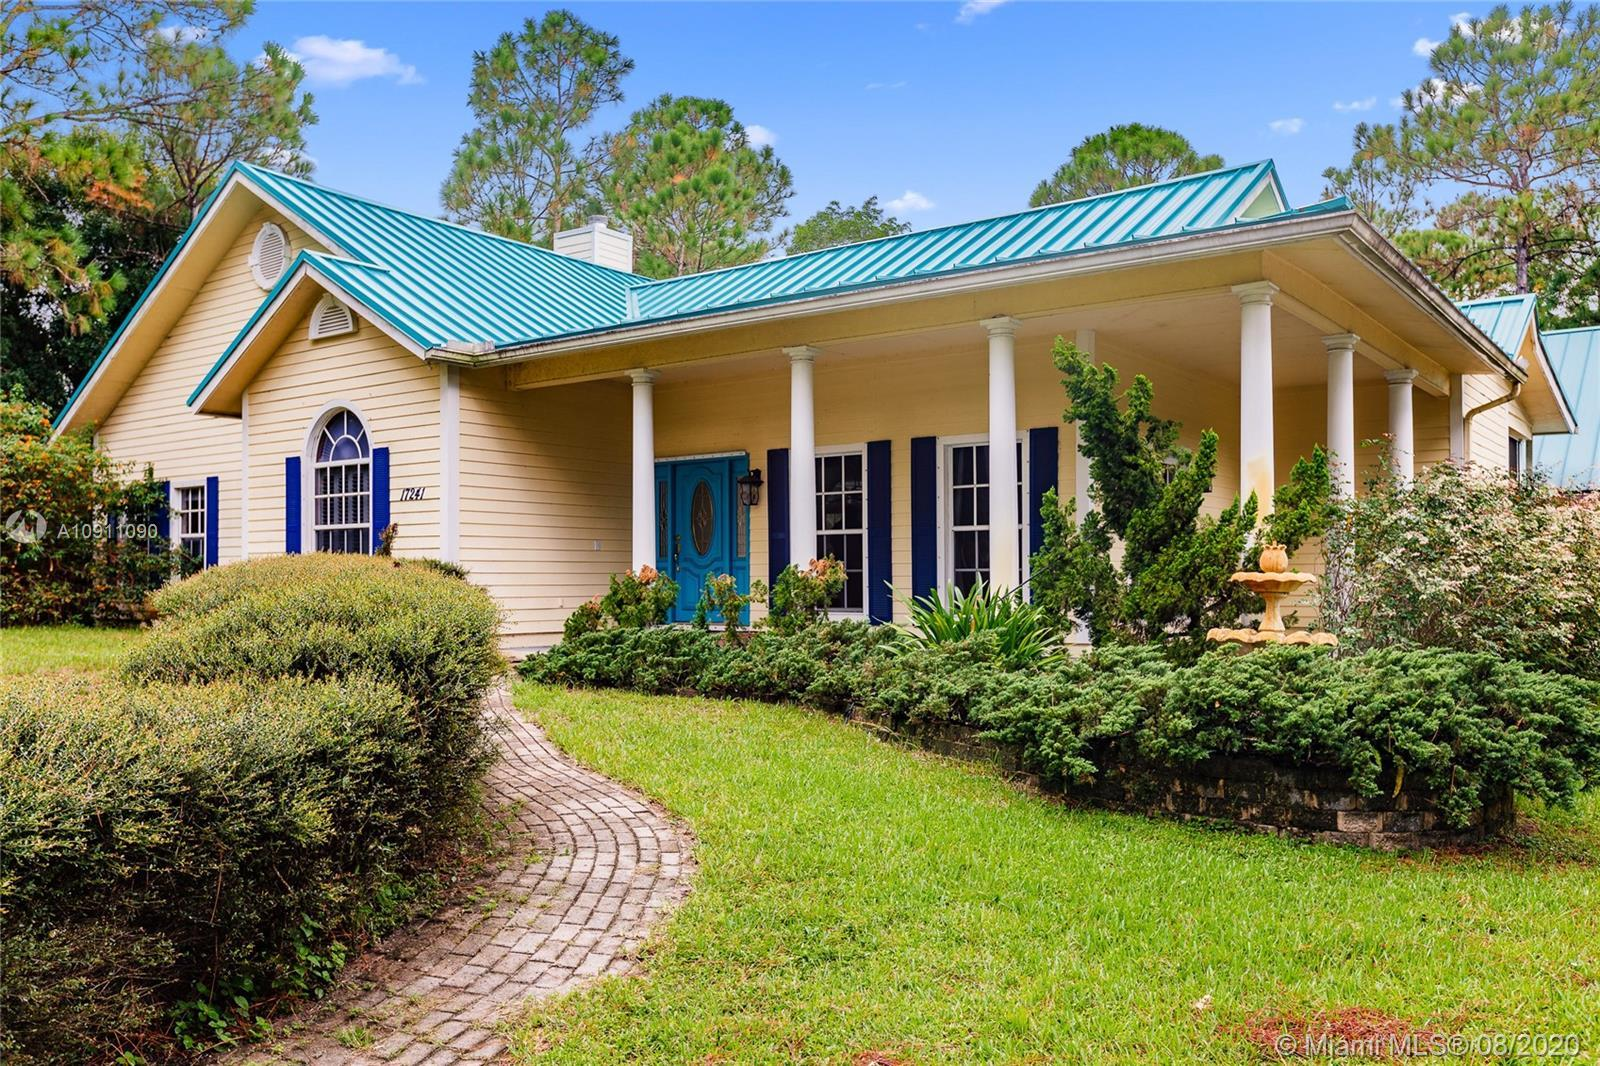 CUSTOM BUILT HOME ON 1.25 ACRES IN JUPITER FARMS. This home was built on a solid concrete slab with